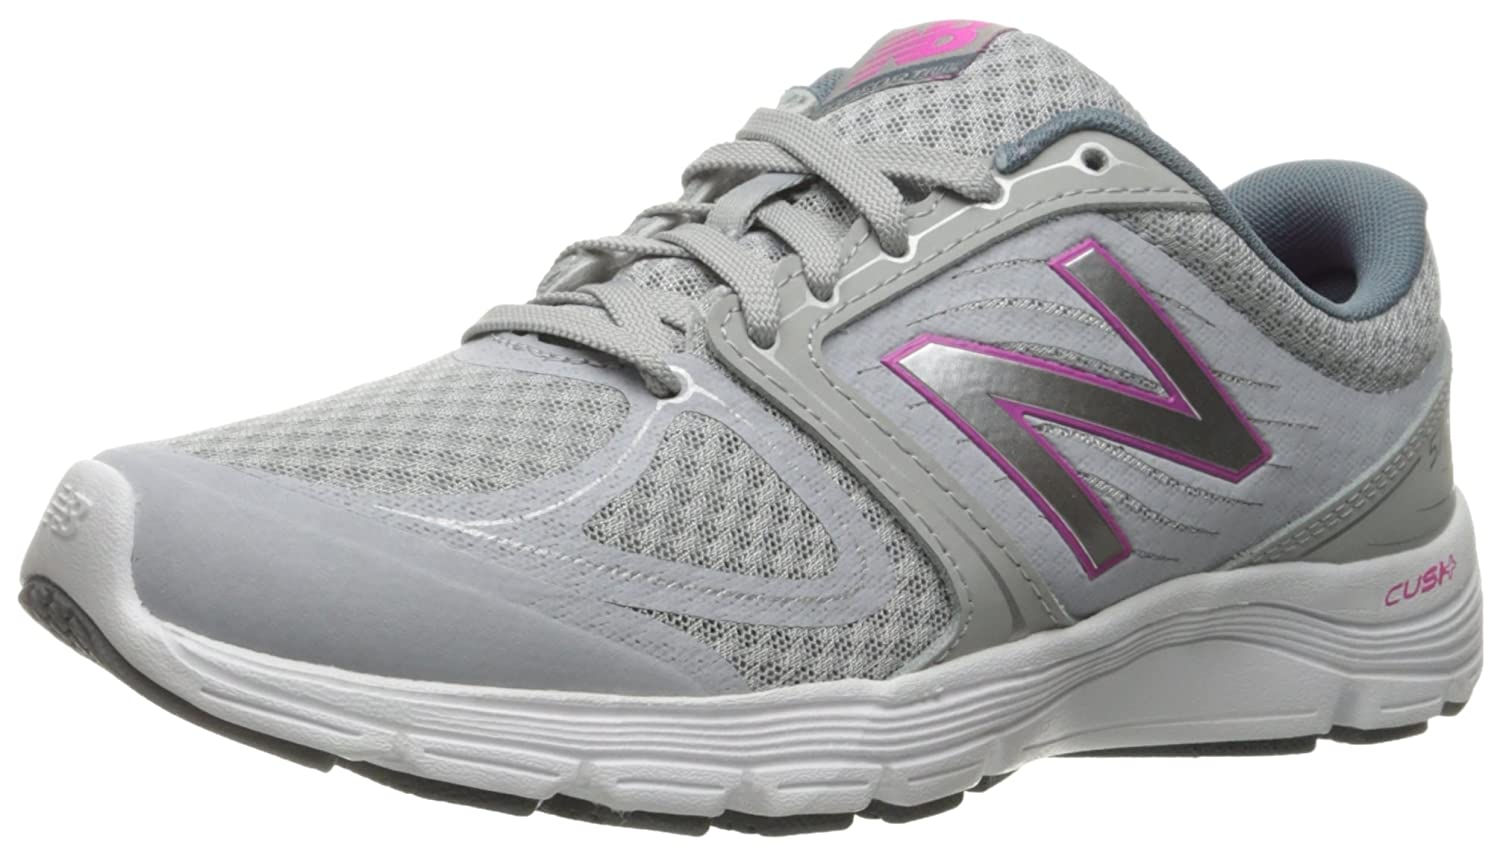 New Balance Women's 575v2 Comfort Ride Running Shoe B01943IKMS 10 D US|Metallic Silver/Blue